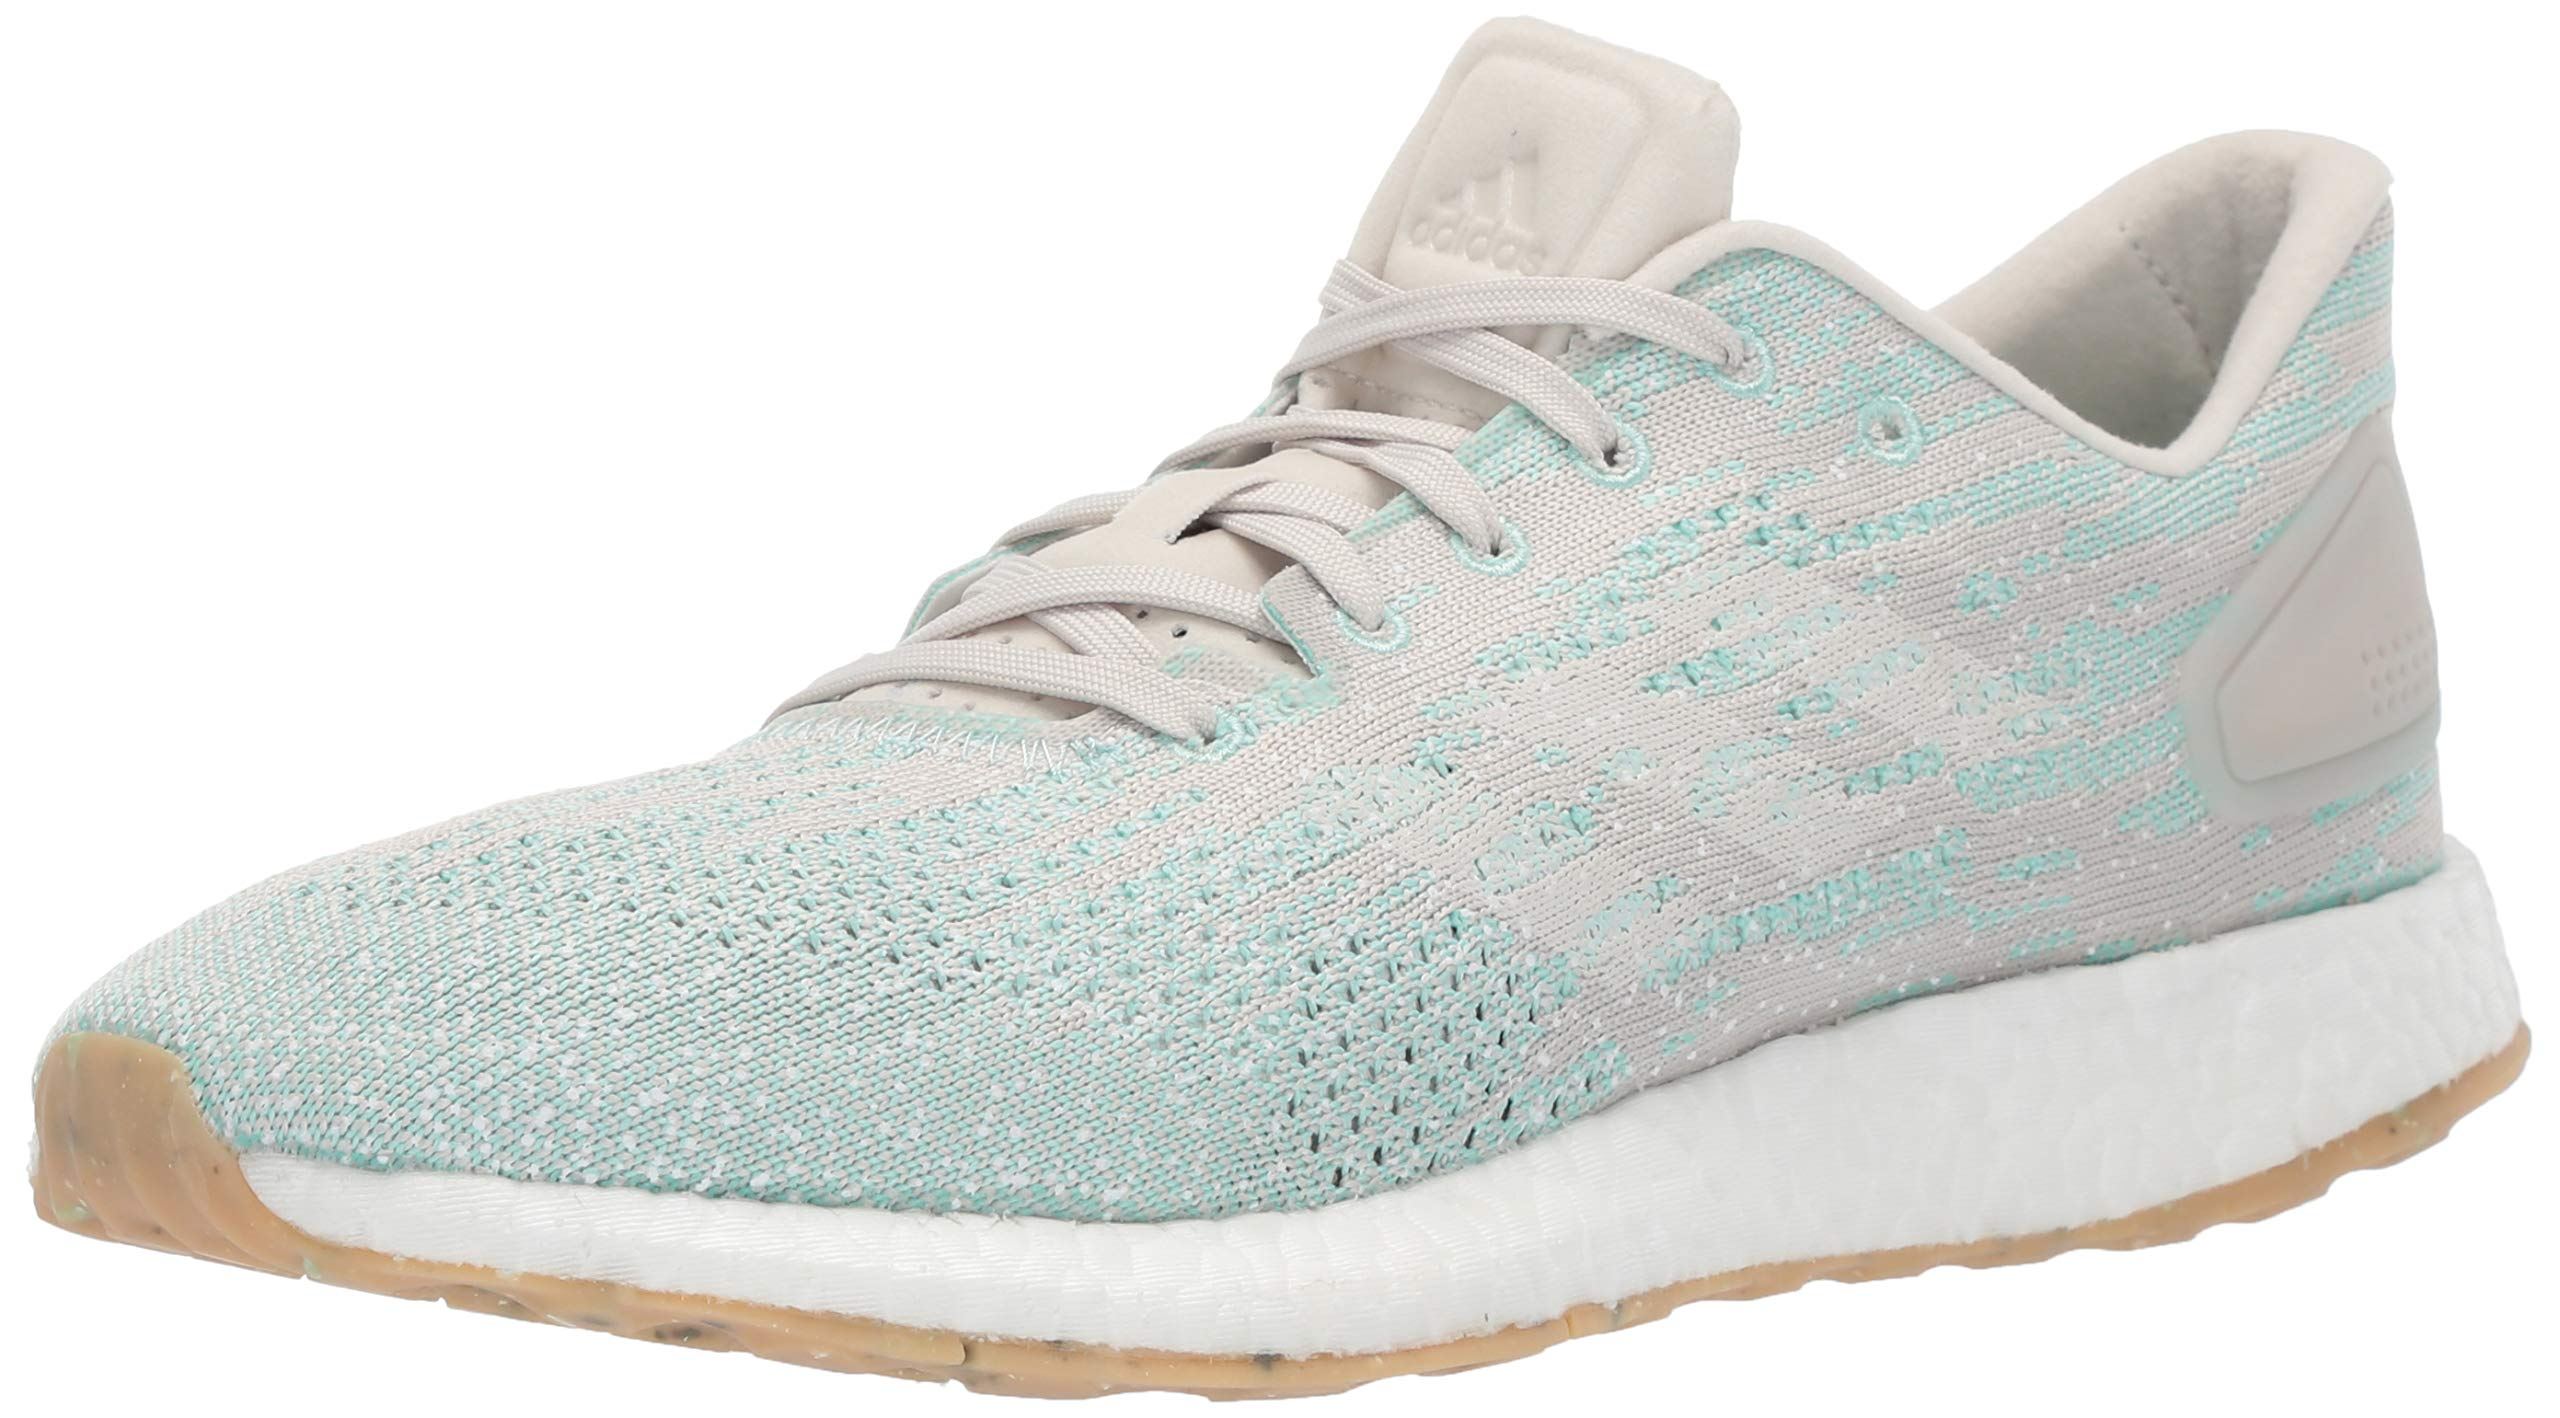 adidas Women's Pureboost DPR Running Shoes, raw White/Clear Mint, 5.5 M US